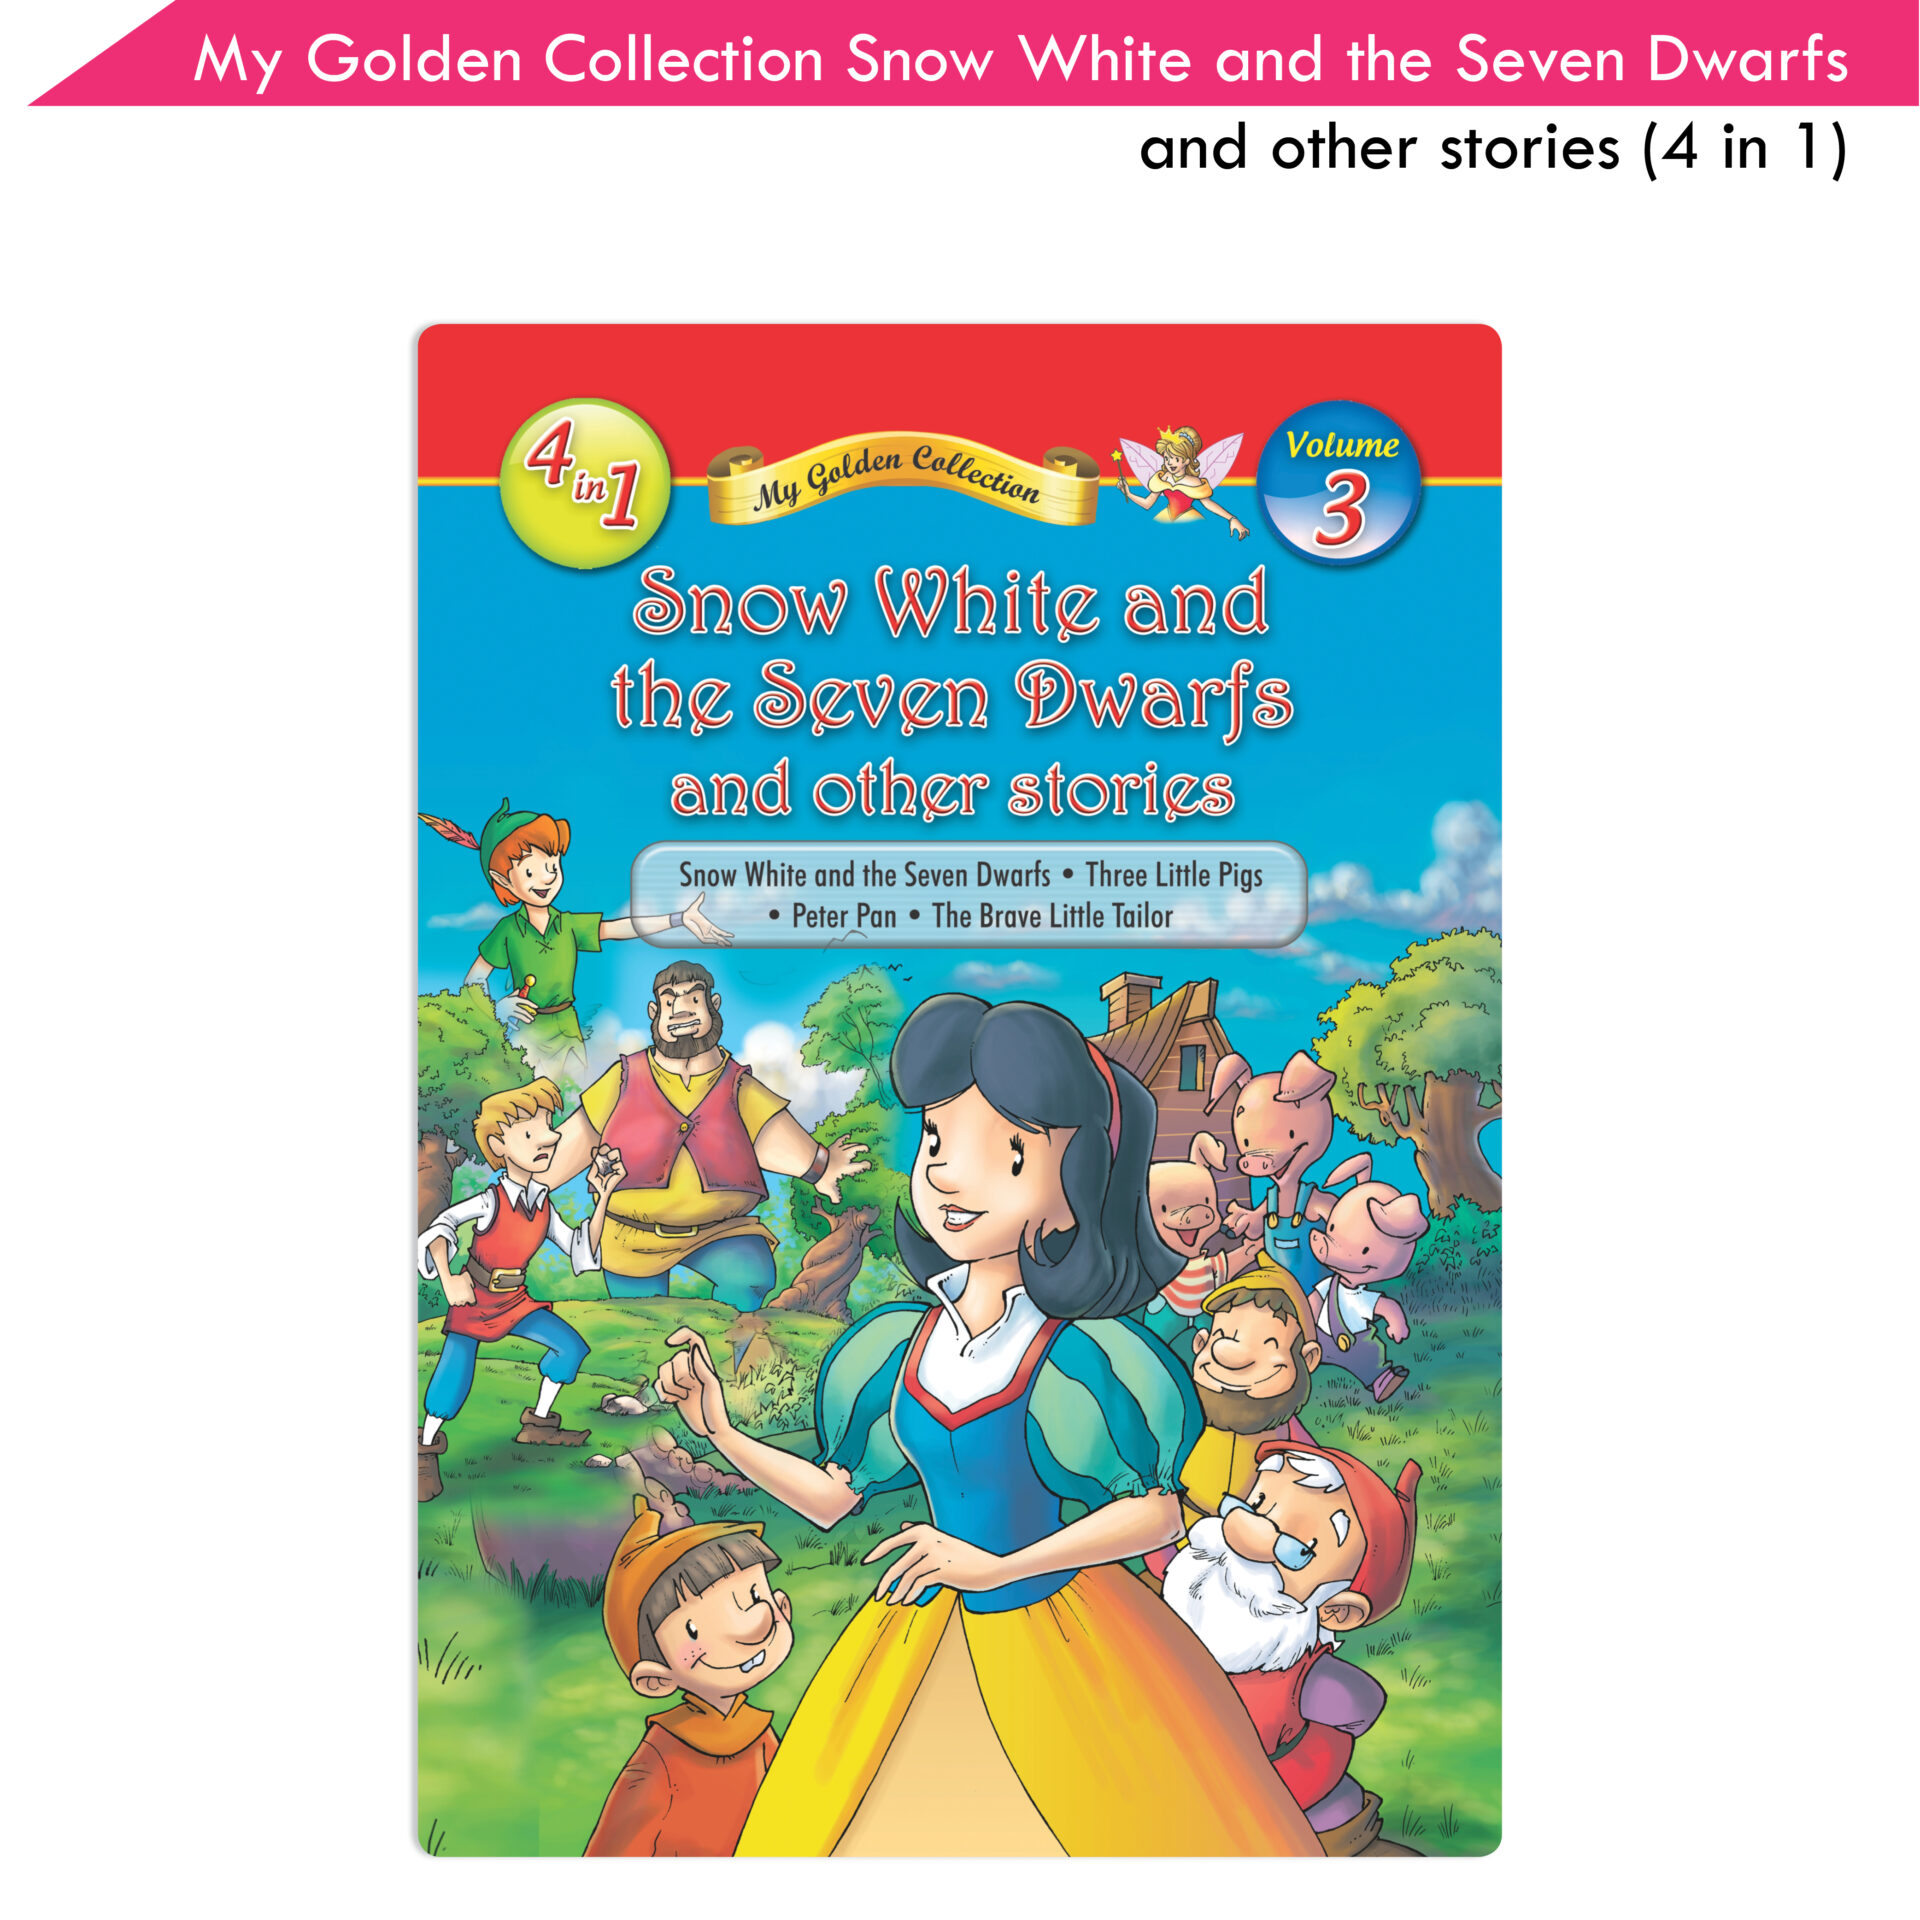 My Golden Collection Volume 3 Snow White and the Seven Dwarfs and Other Stories 1